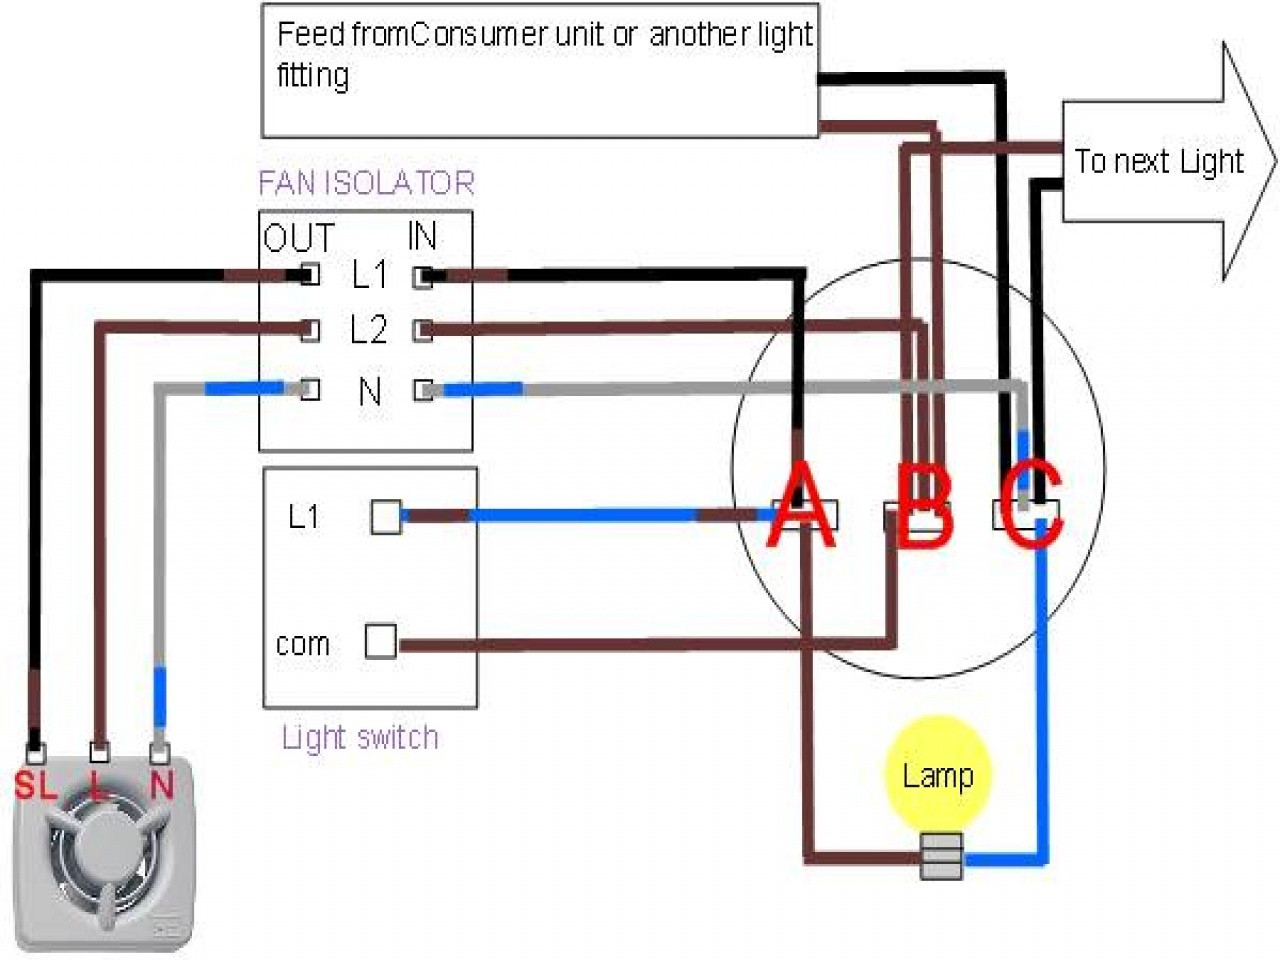 Wiring Diagram For Broan Exhaust Fan Light | Wiring Diagram - Wiring A Bathroom Fan And Light Diagram